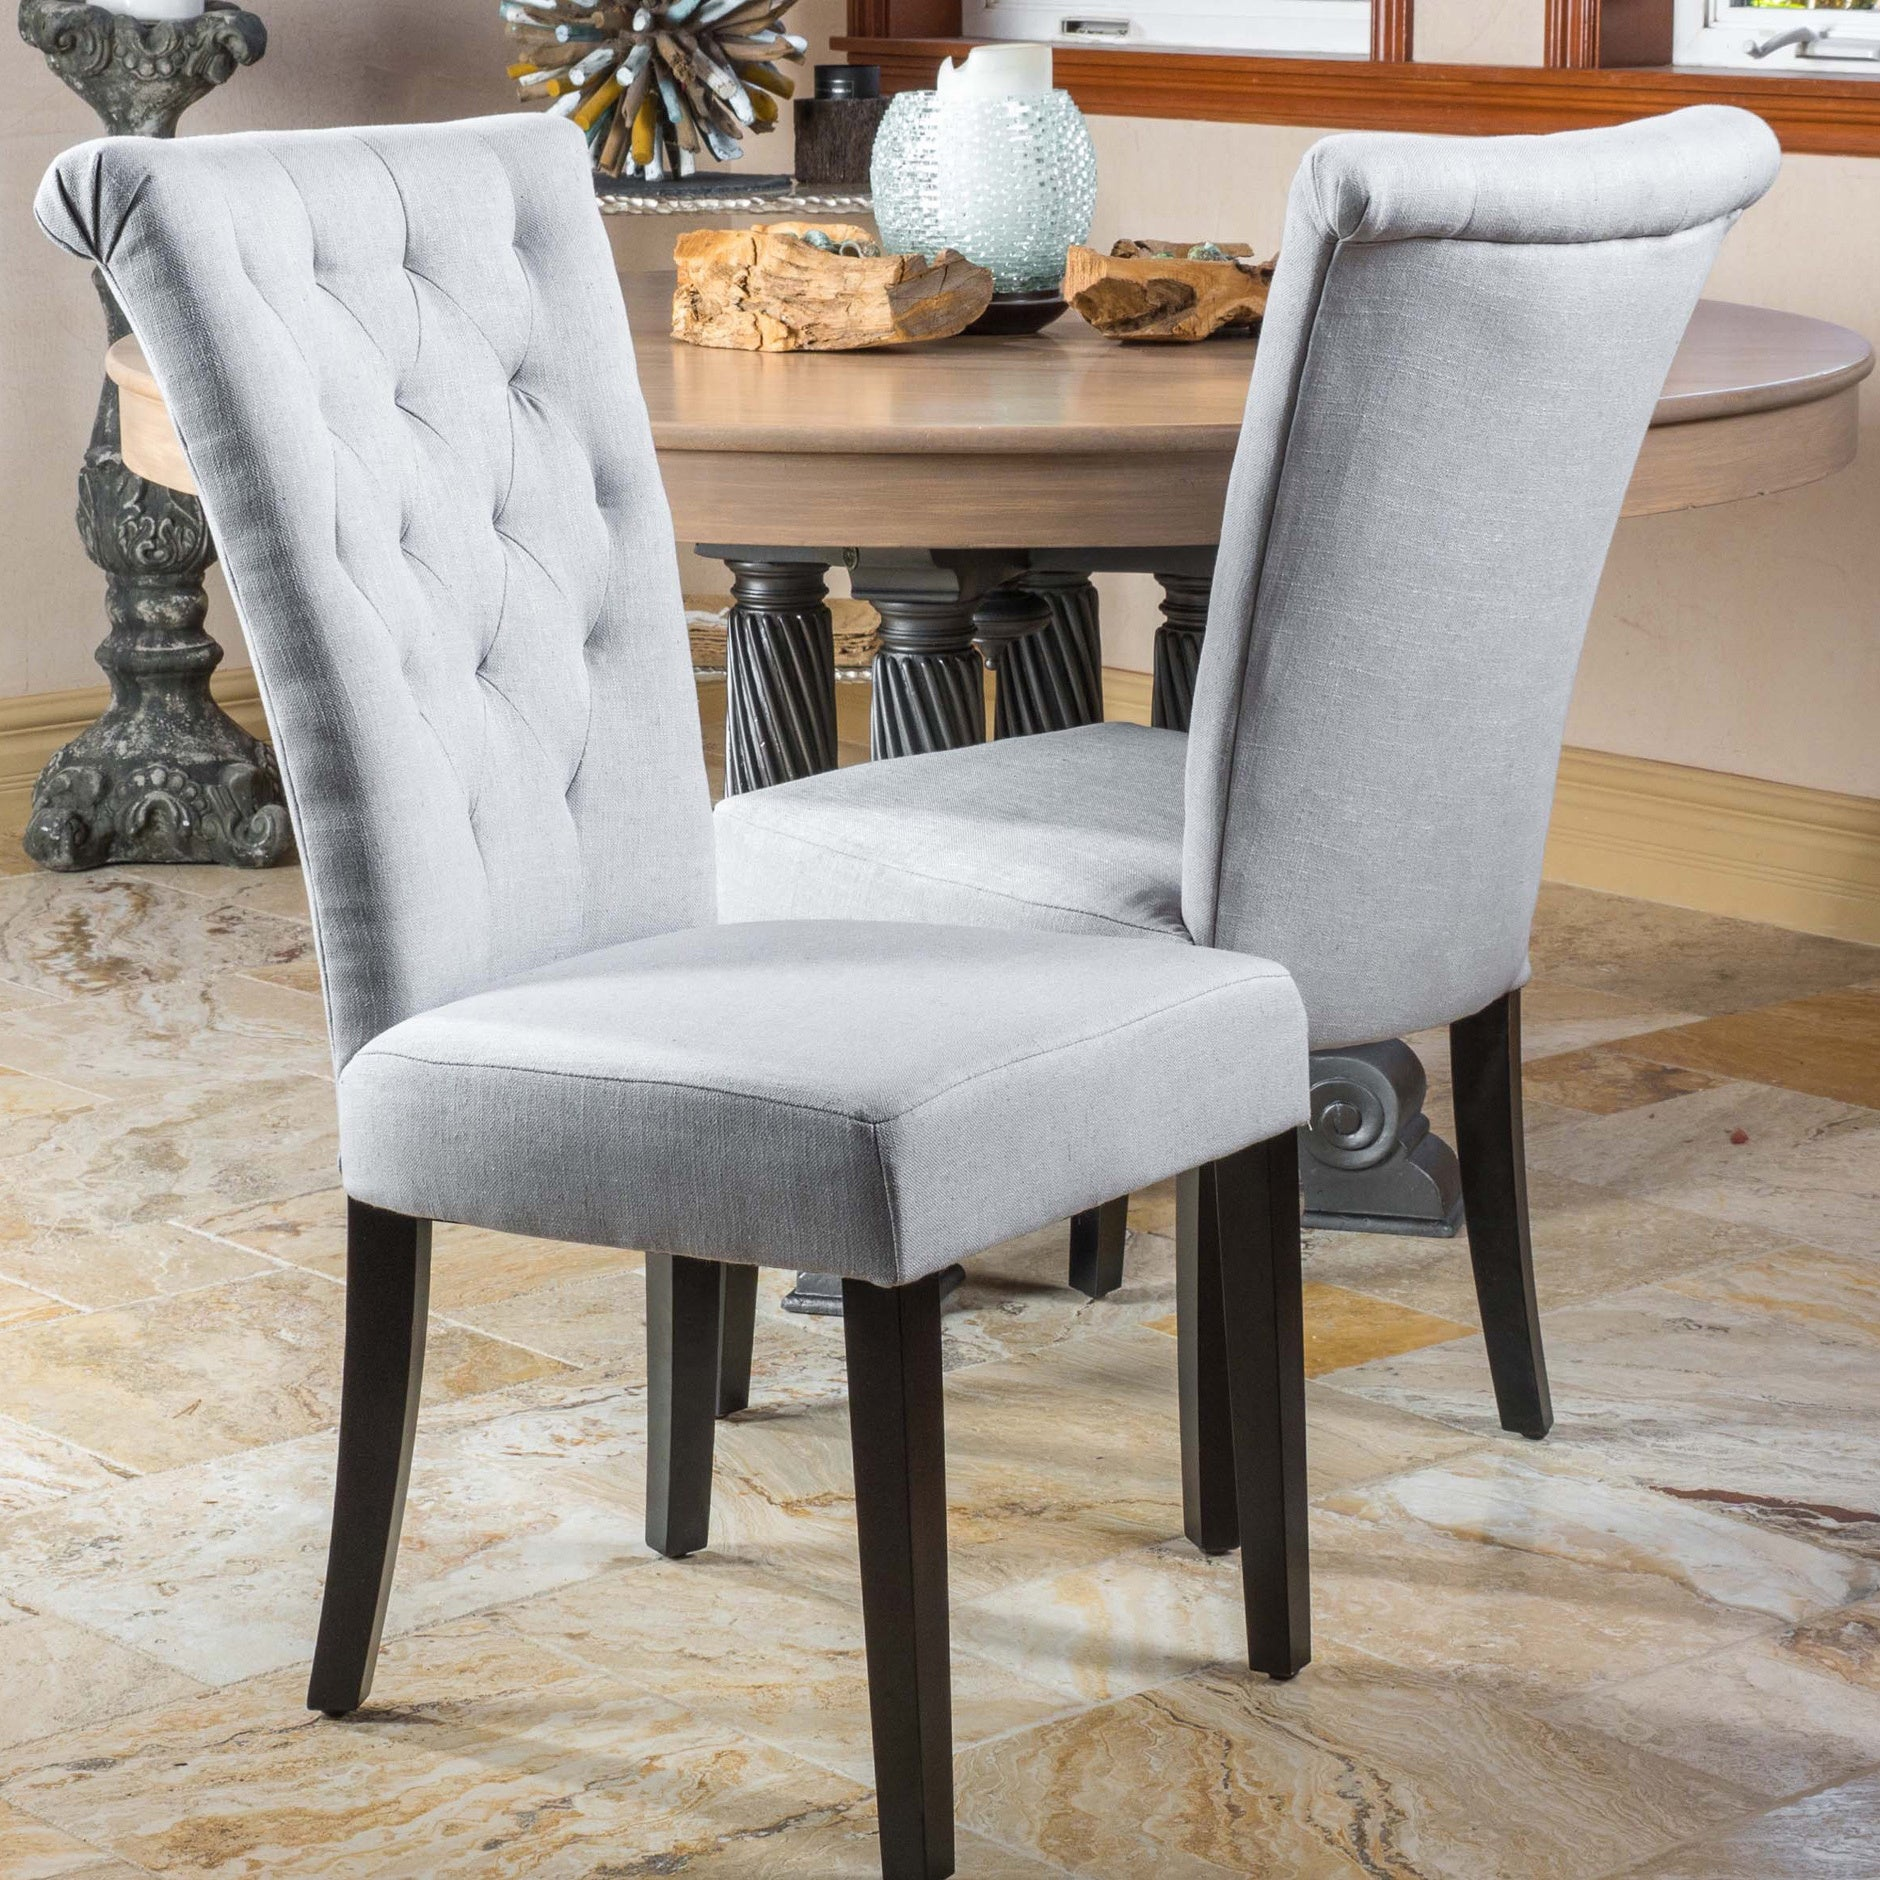 Venetian Tufted Dining Chairs (Set Of 2) By Christopher Knight Home   Free  Shipping Today   Overstock.com   15951770